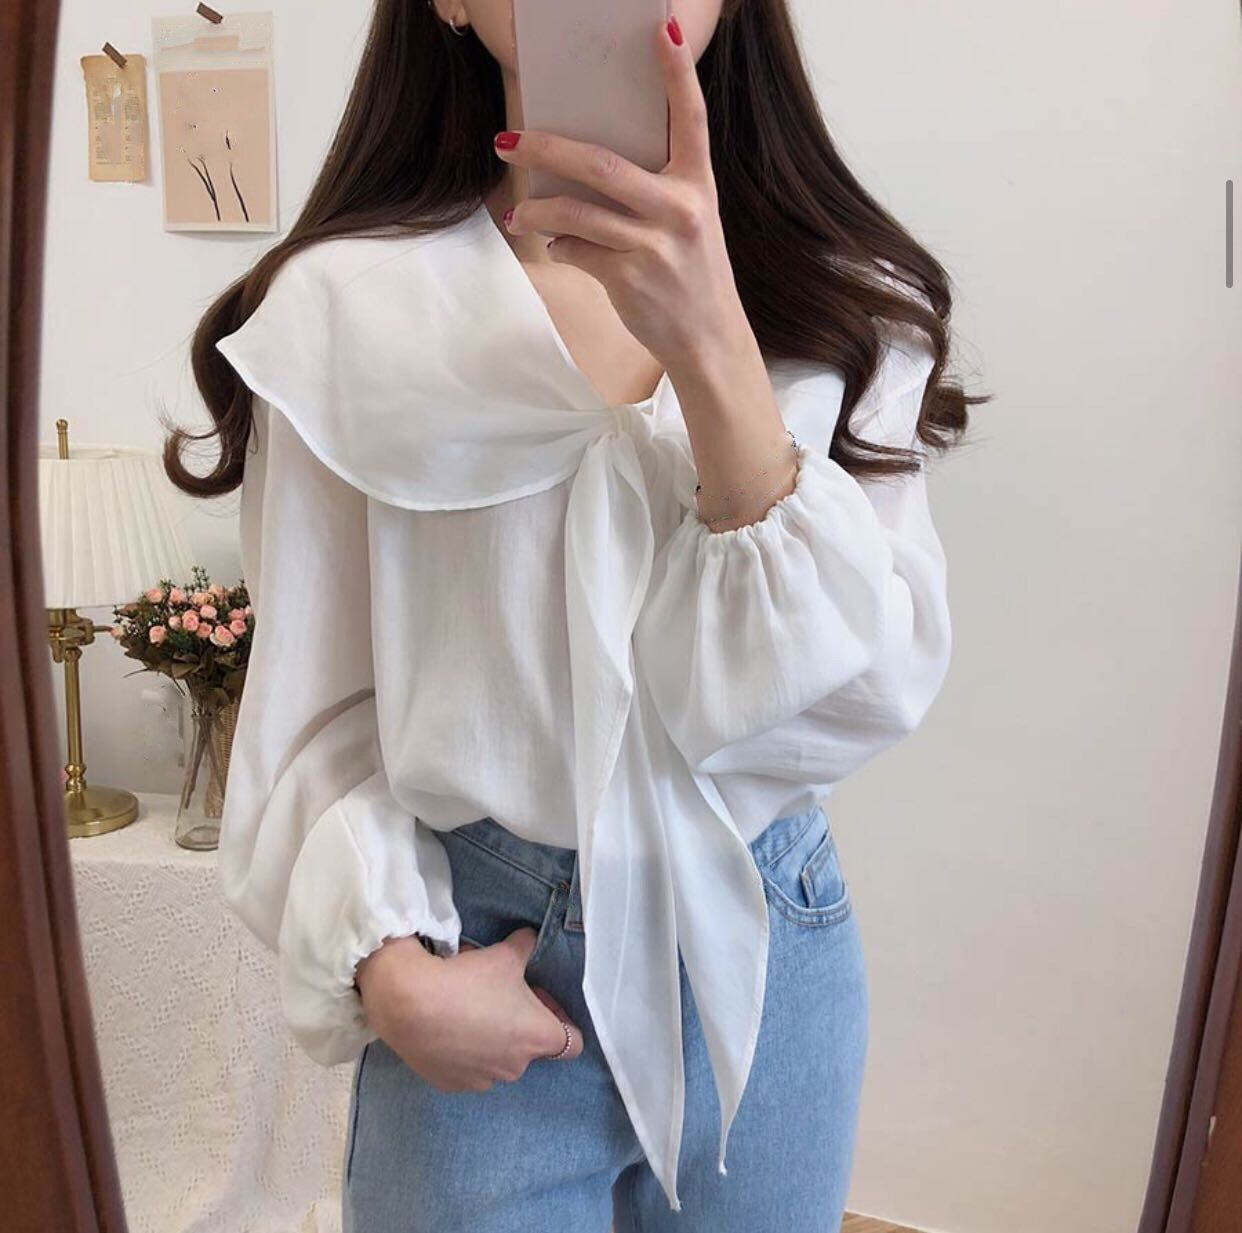 6 Korean Style Women Bow Tie Knot Tops Casual Cute Sweet Shirt